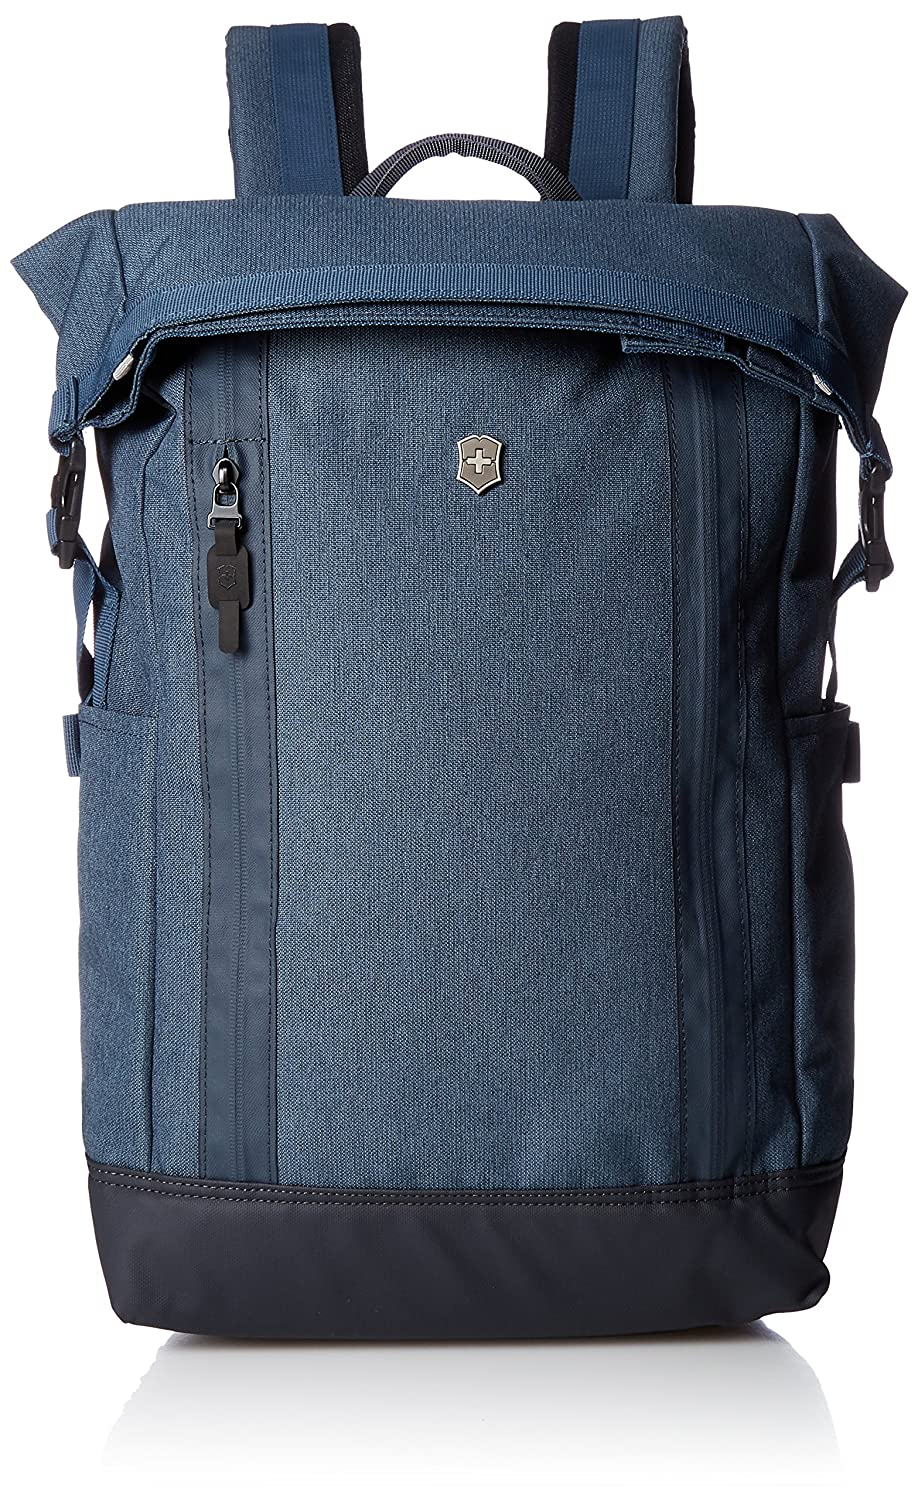 Victorinox Altmont Classic Rolltop Laptop Backpack, Blue, One Size